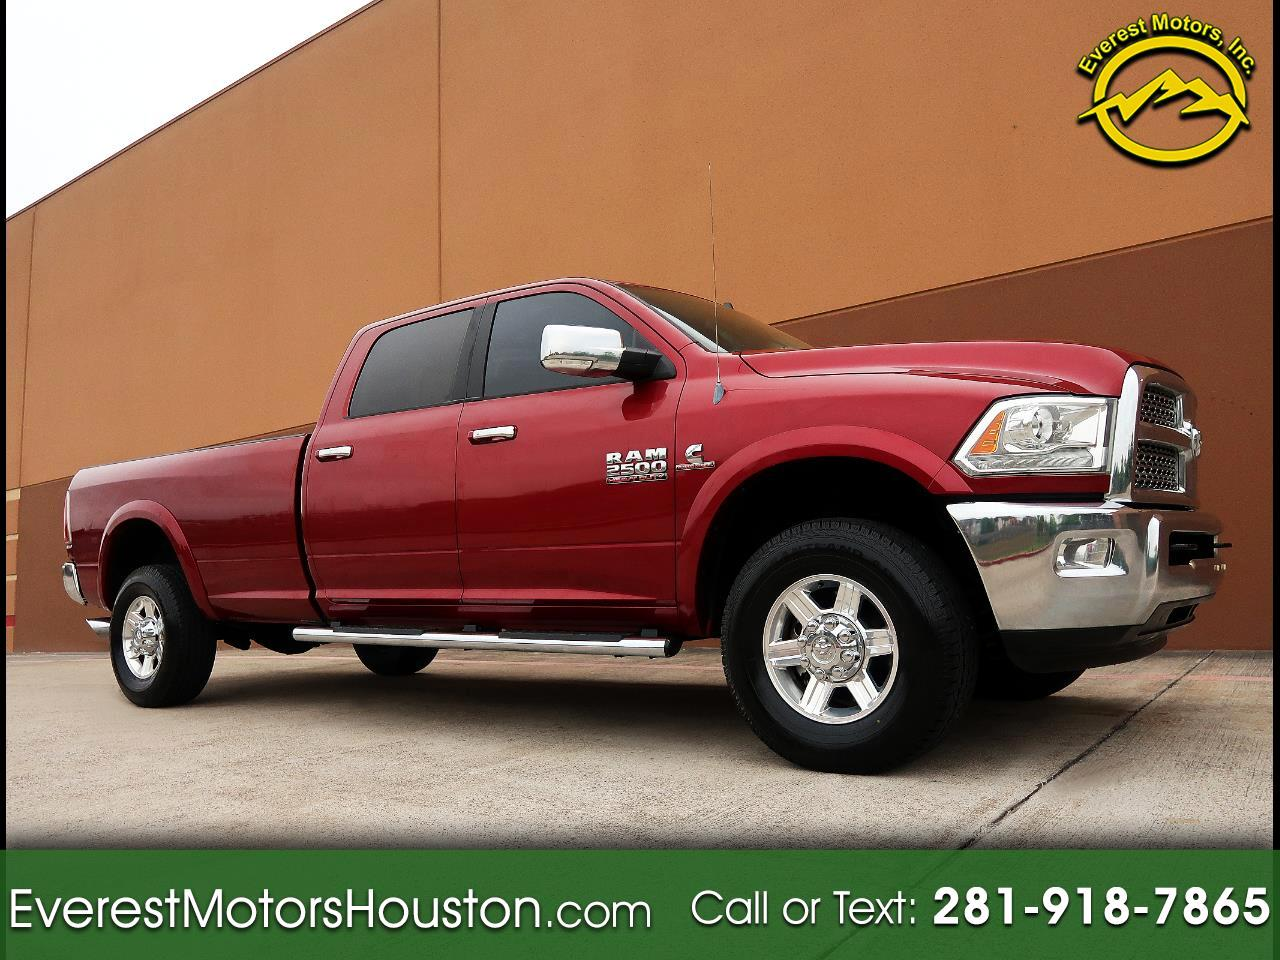 2013 Dodge Ram 2500 LARAMIE CREW CAB LONG BED 4WD NAV CAM LOADED